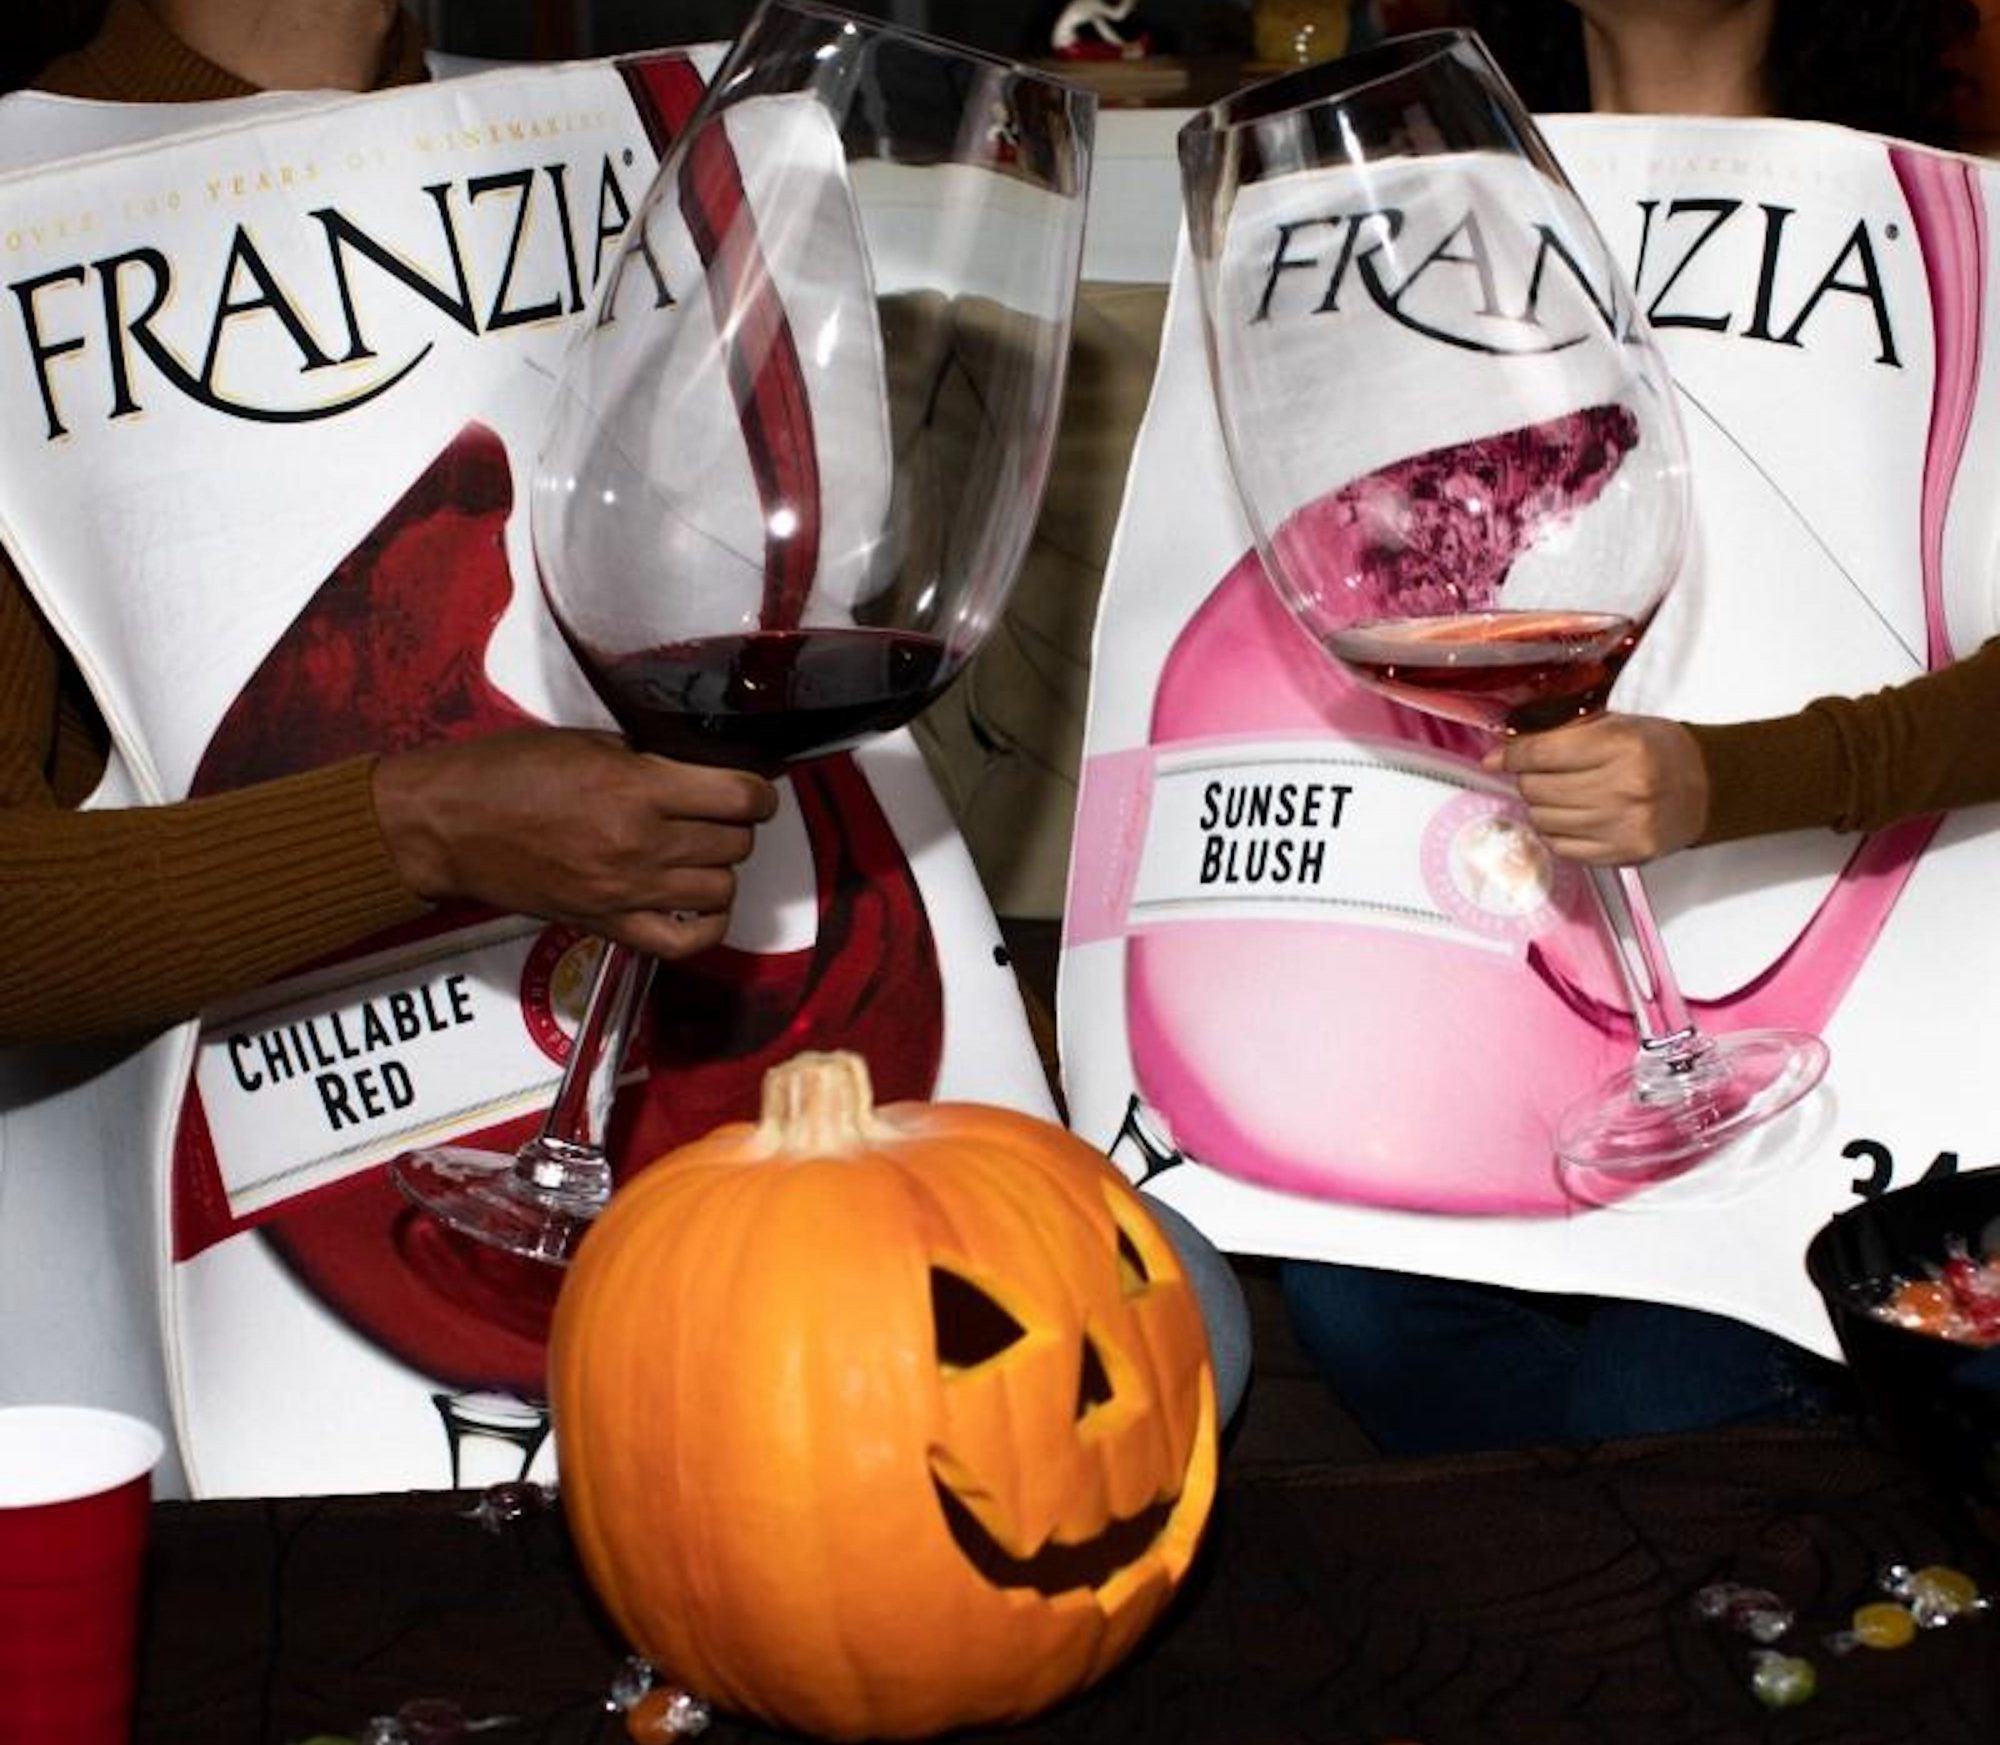 Franzie Halloween costumes in Chillable Red and Sunset Blush